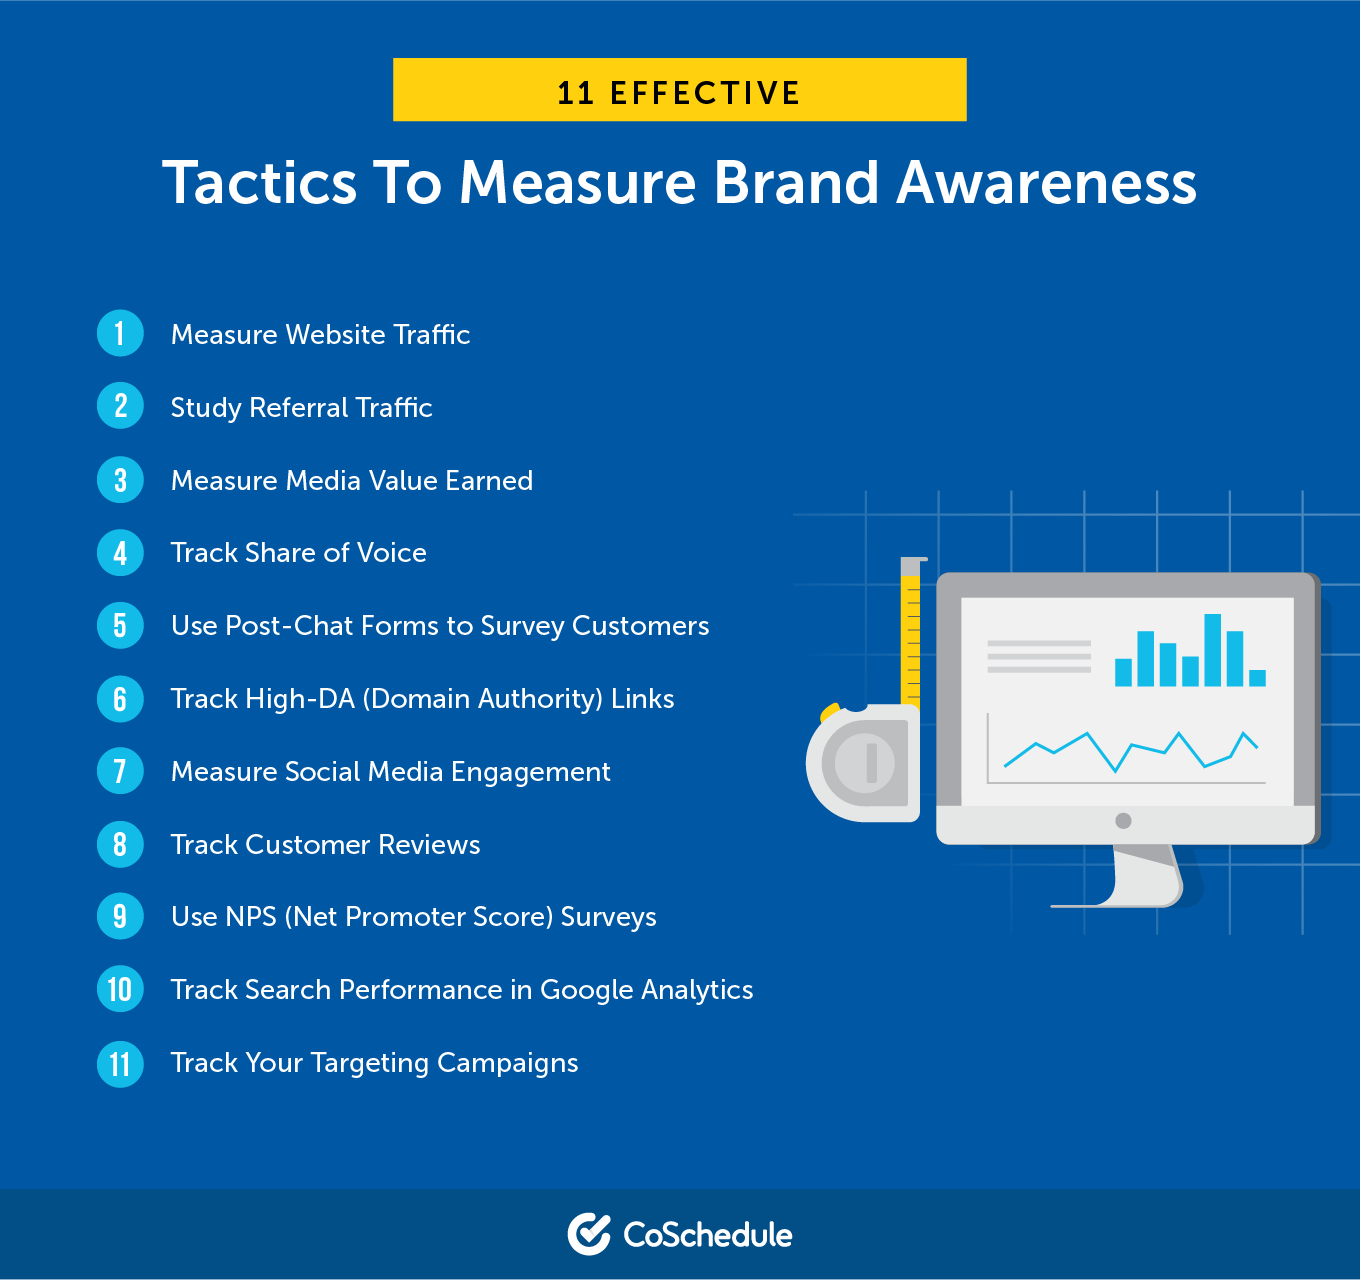 11 Effective Tactics to Measure Brand Awareness